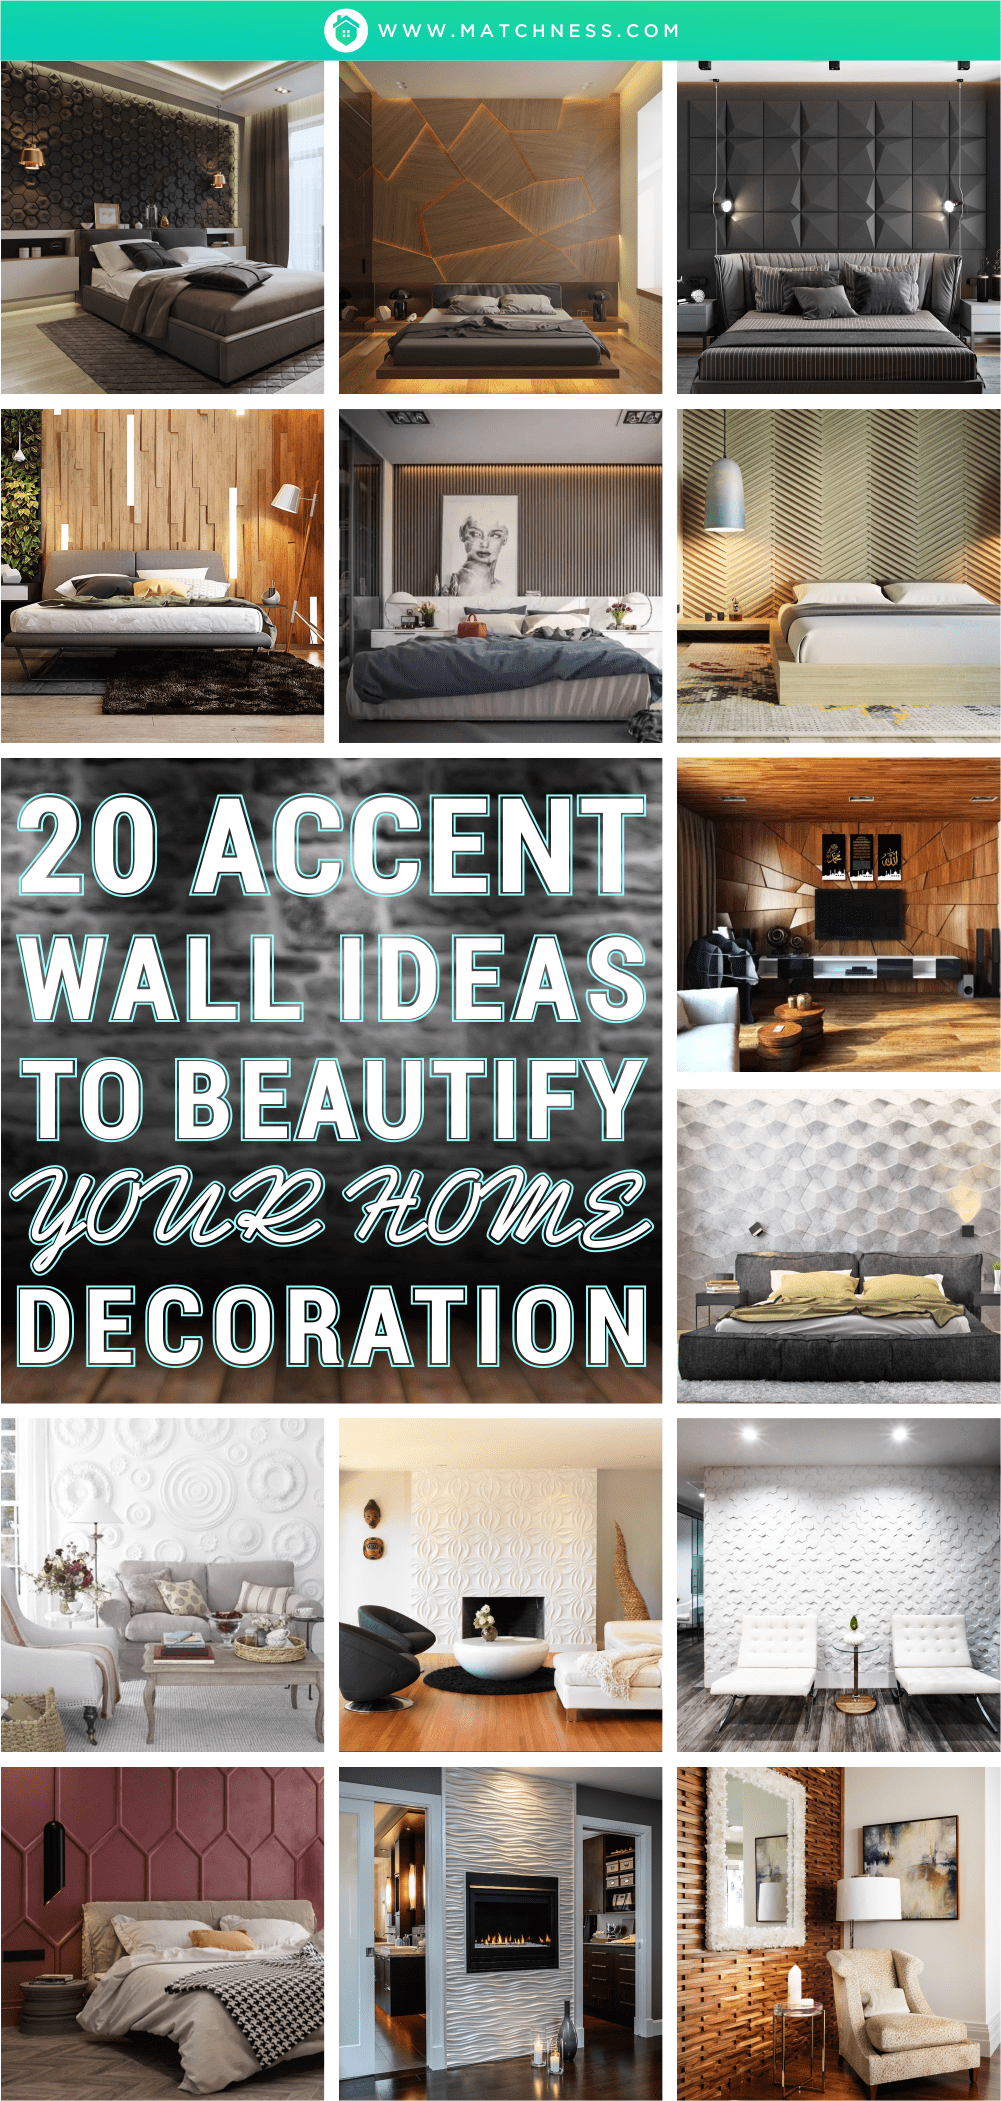 20-accent-wall-ideas-to-beautify-your-home-decoration-1